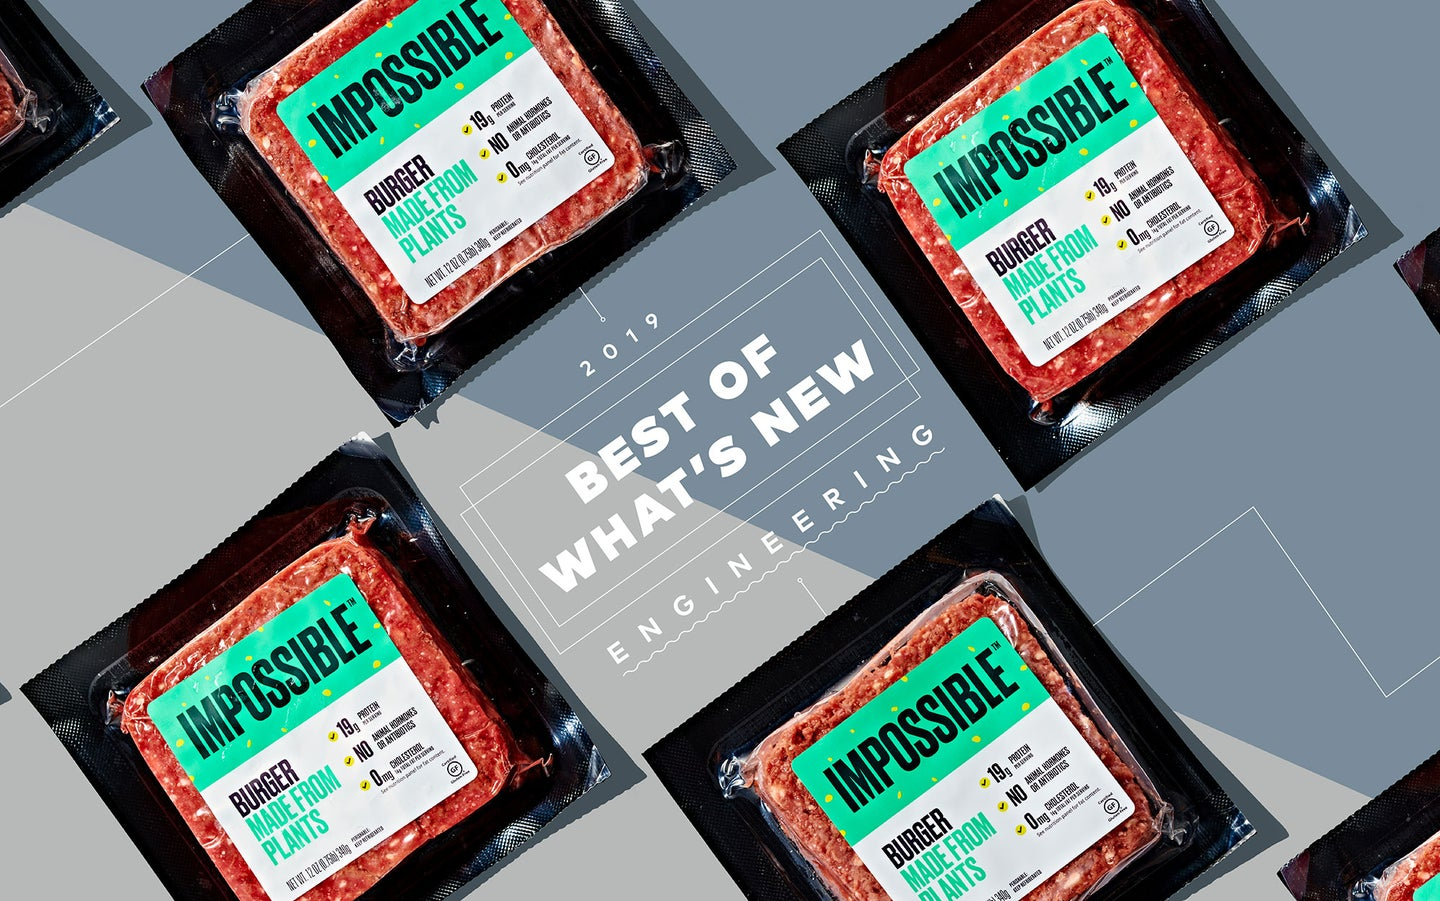 Impossible plant based burger packaging